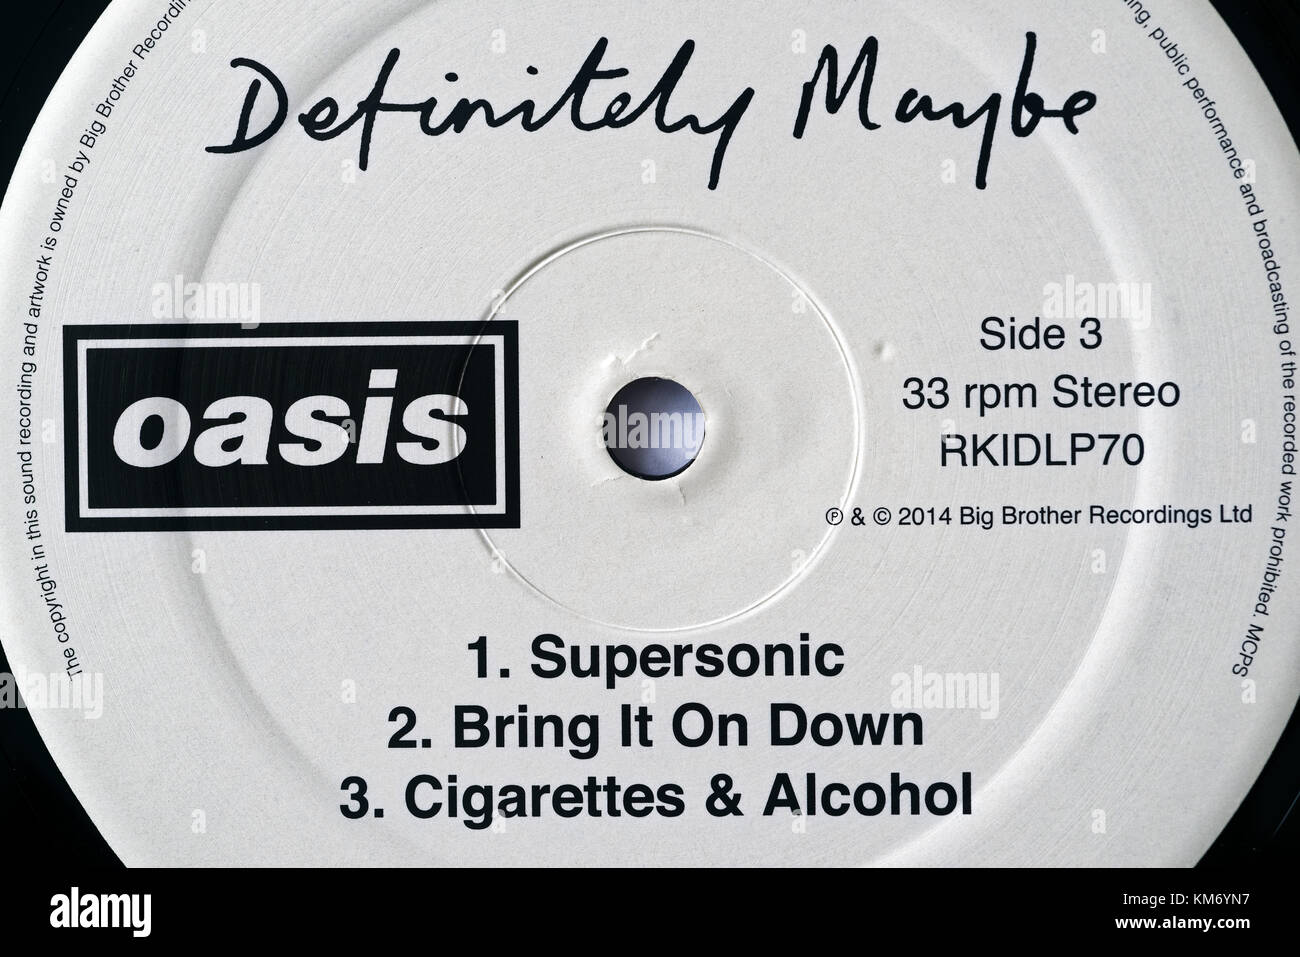 Oasis album Definitely Maybe label detail - Stock Image